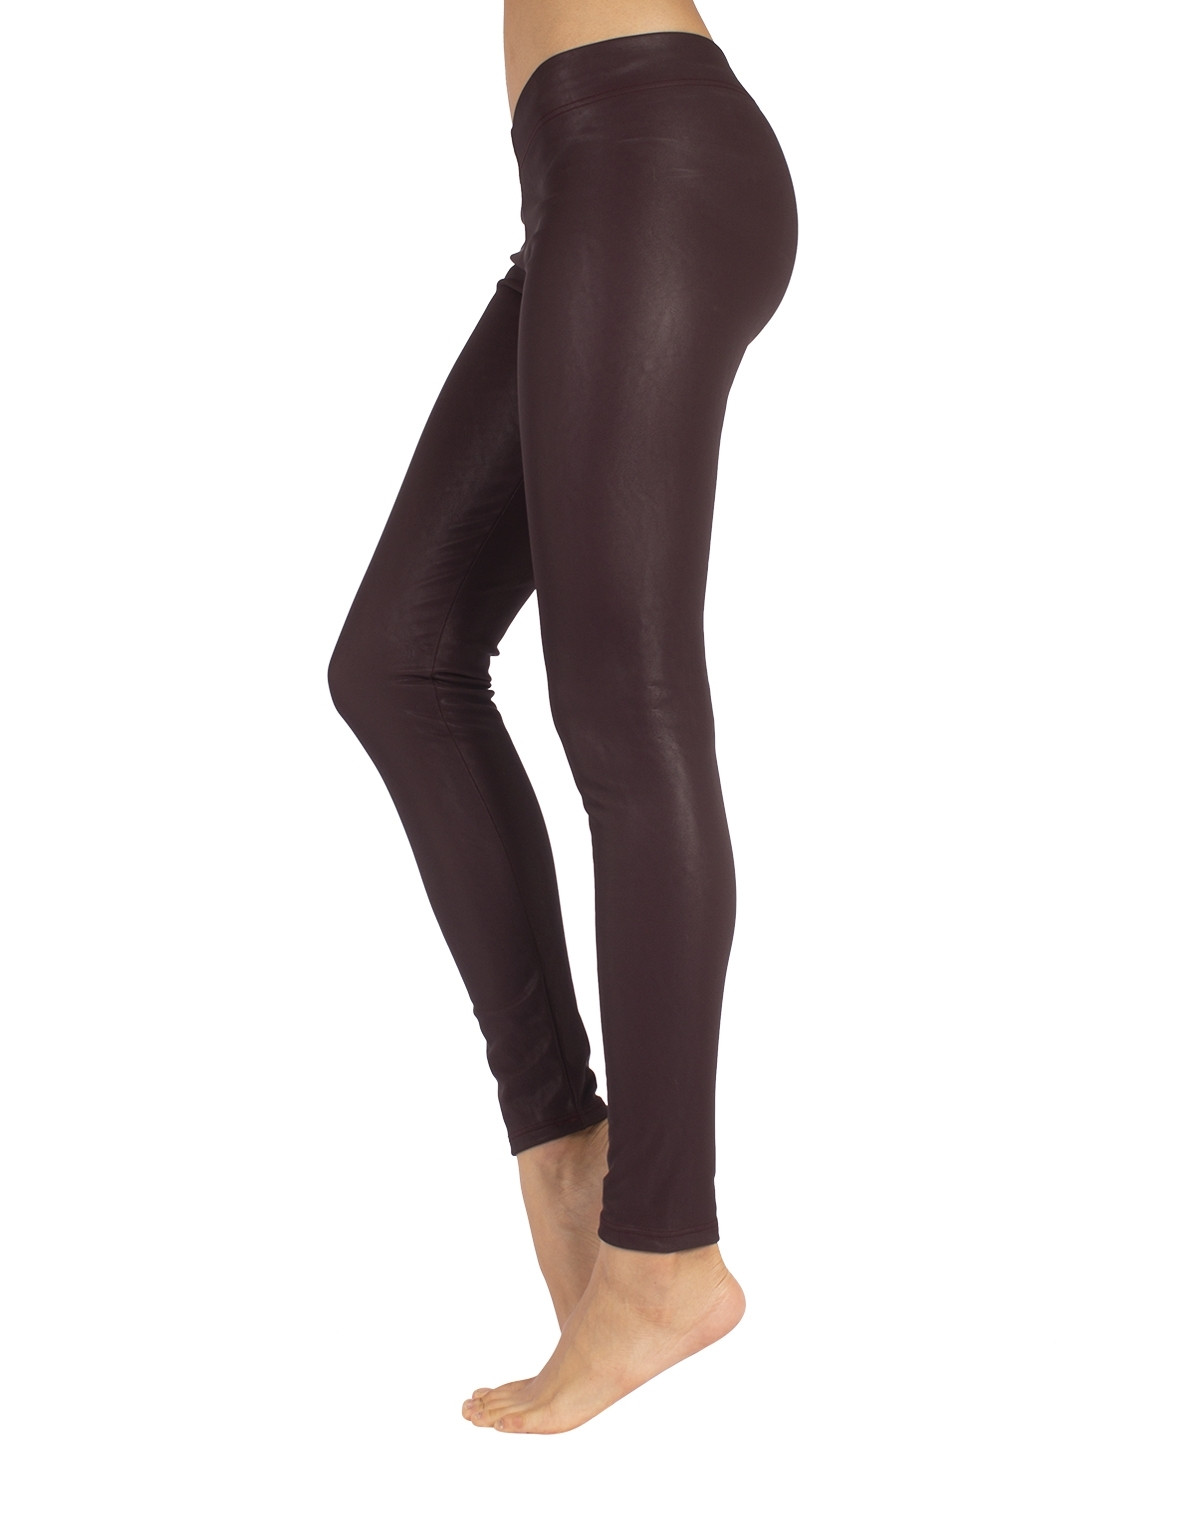 LEGGINGS PELLE TERMICI BORDEAUX